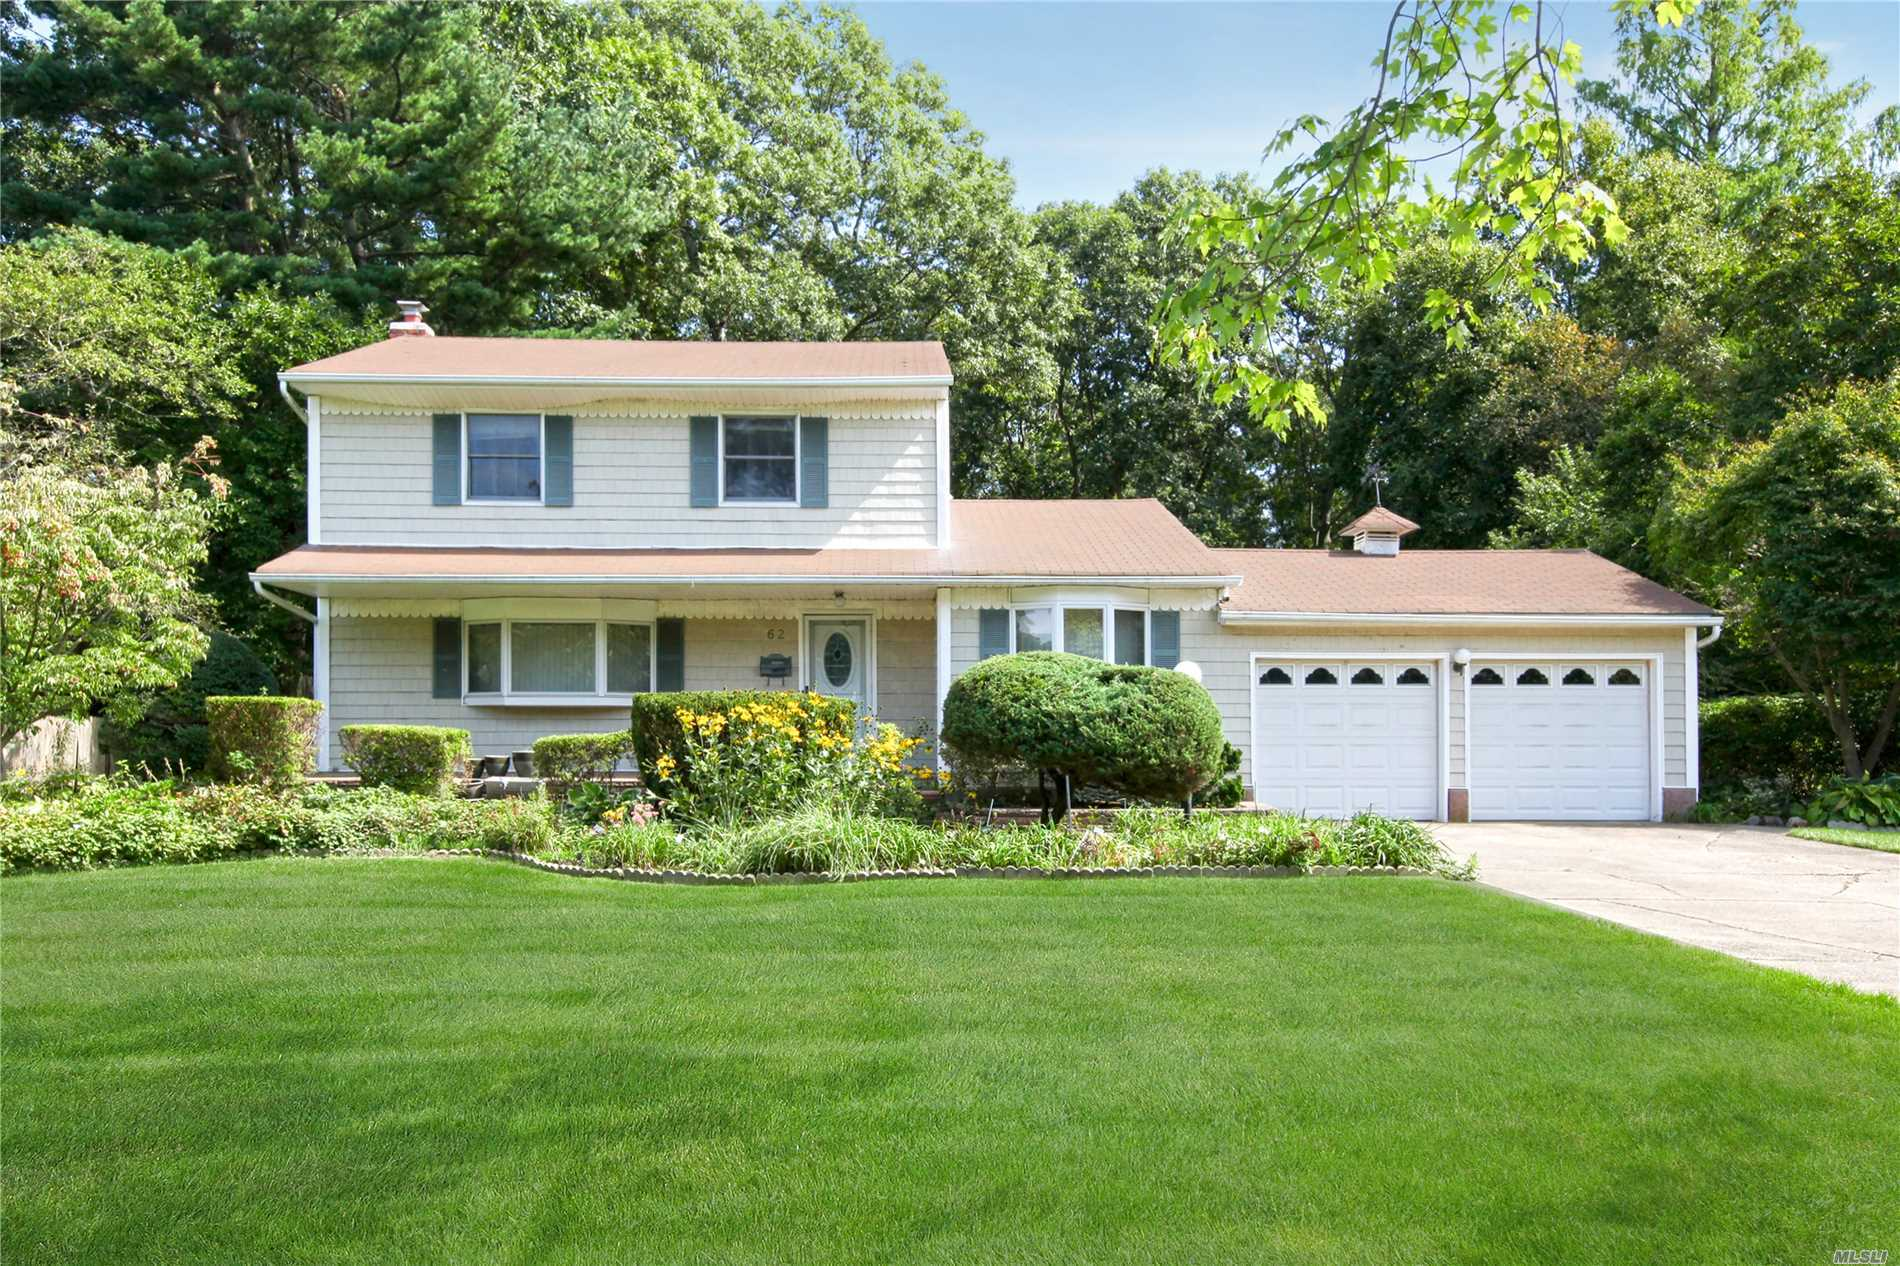 62 Schuyler Dr - Commack, New York